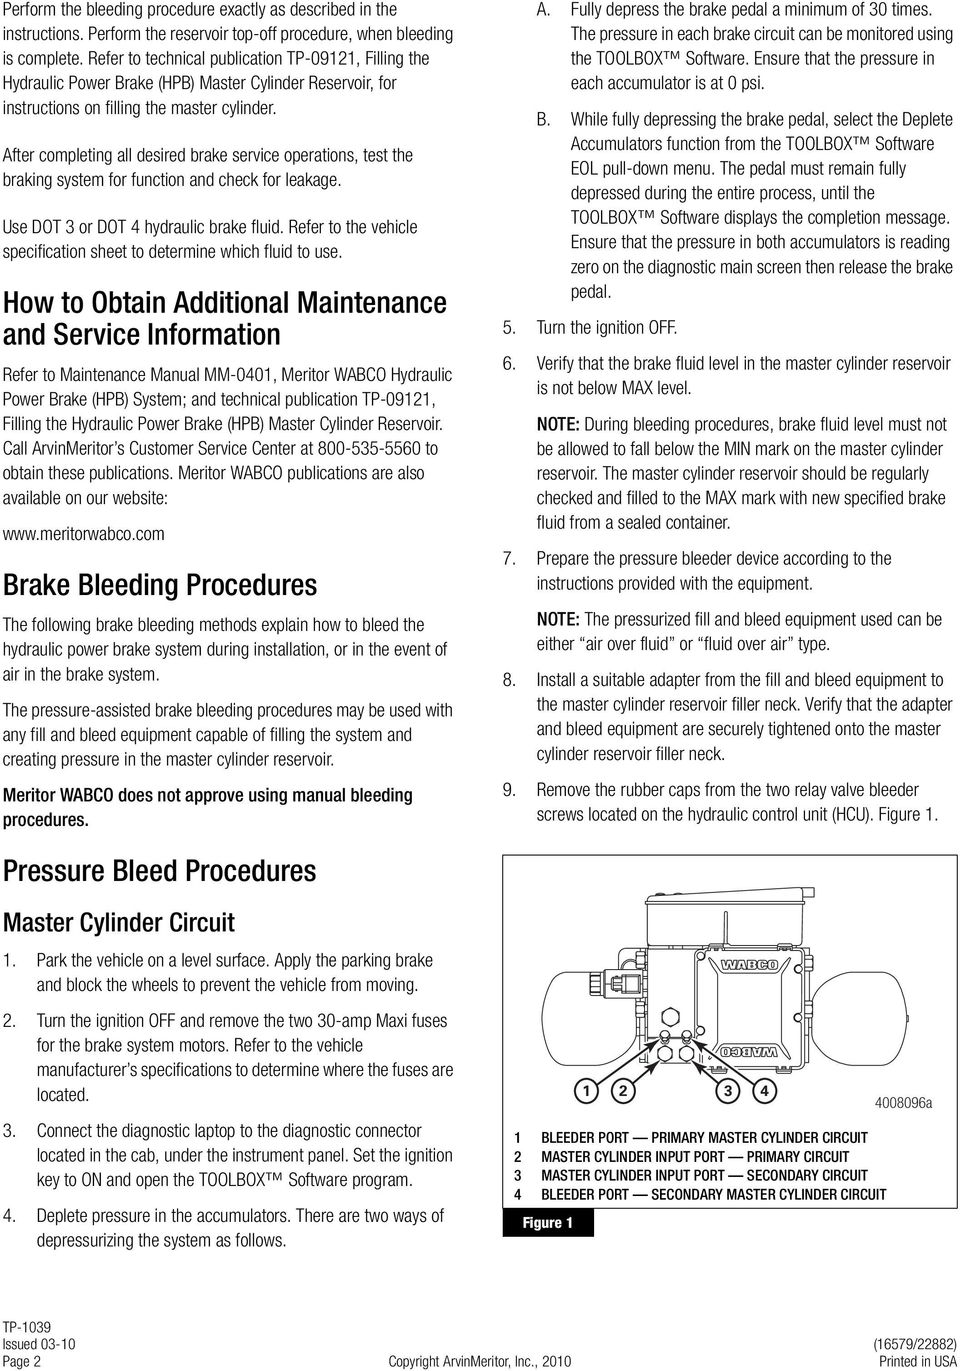 Meritor Wabco Hydraulic Power Brake Hpb System Bleeding Procedures Form Below To Delete This Basic Circuit Image From Our Index After Completing All Desired Service Operations Test The Braking For Function And Check